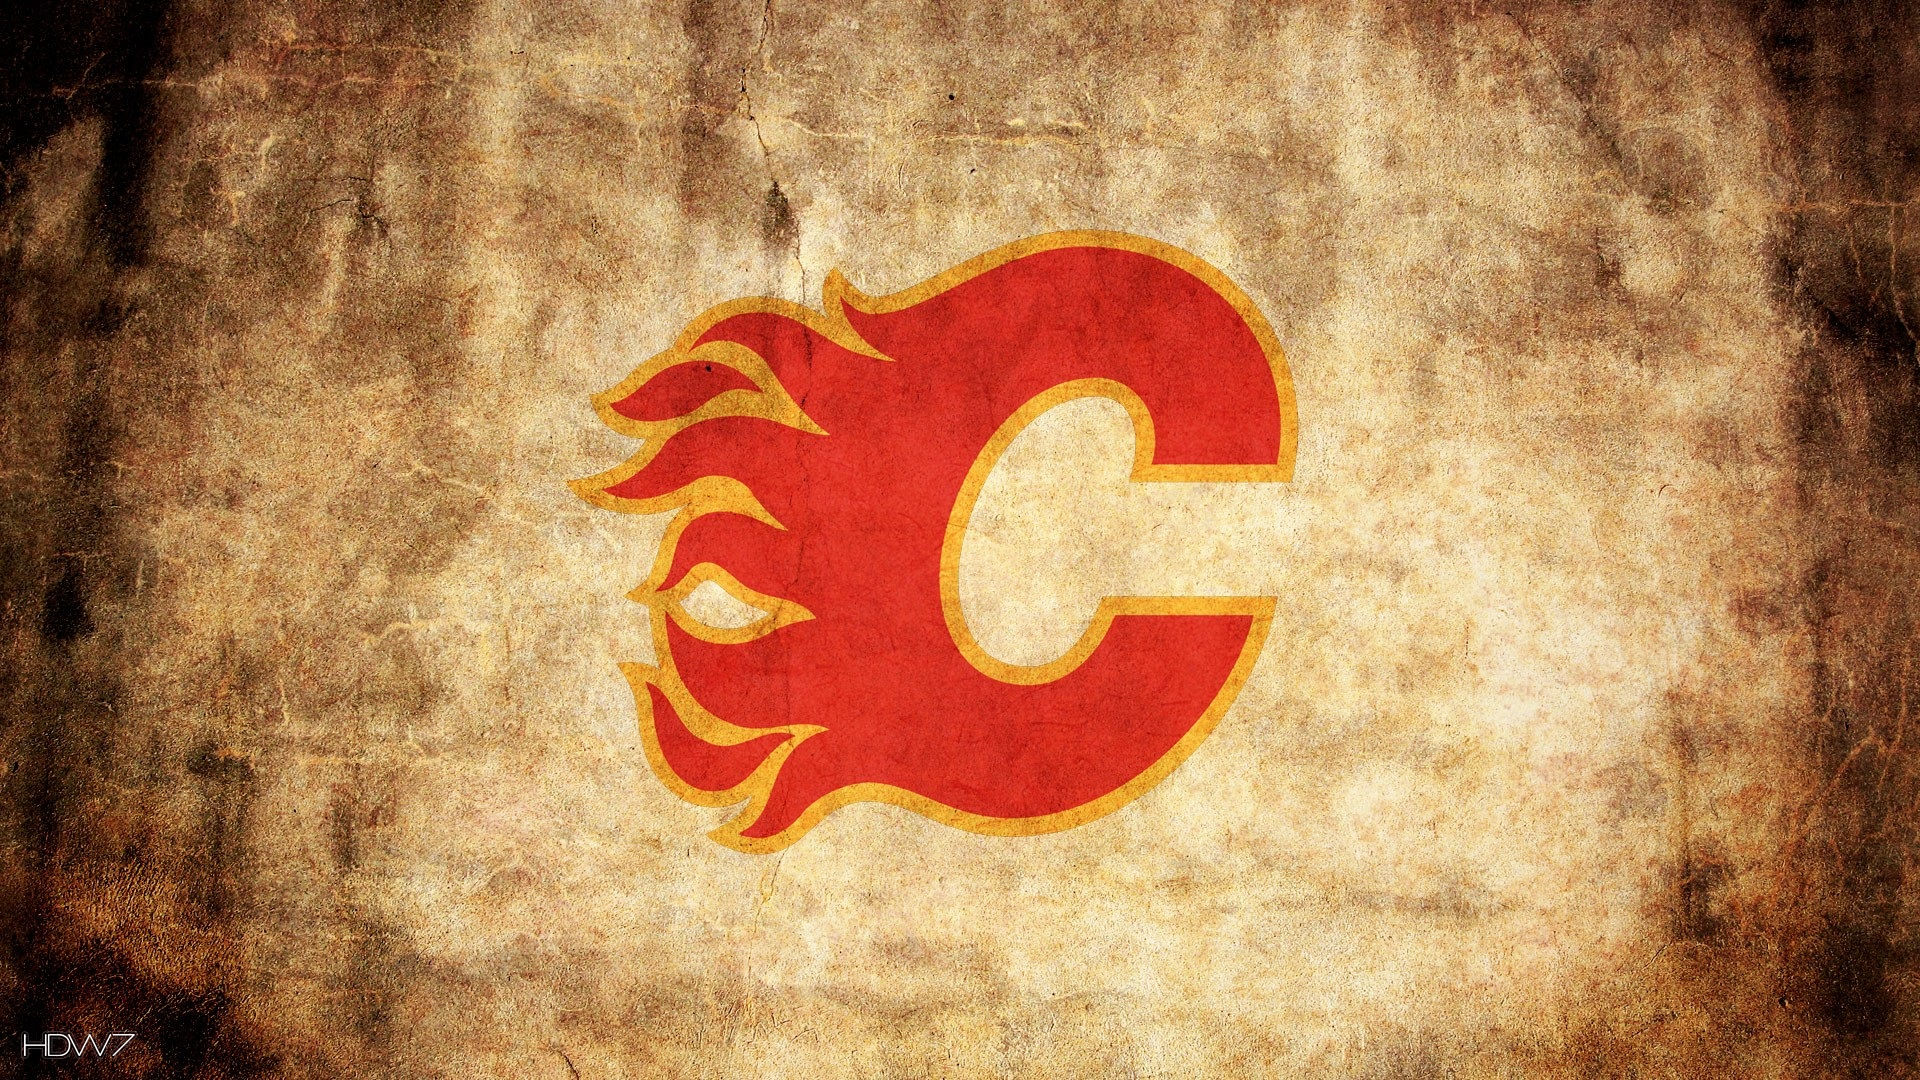 calgary flames HD wallpaper gallery 175 1920x1080